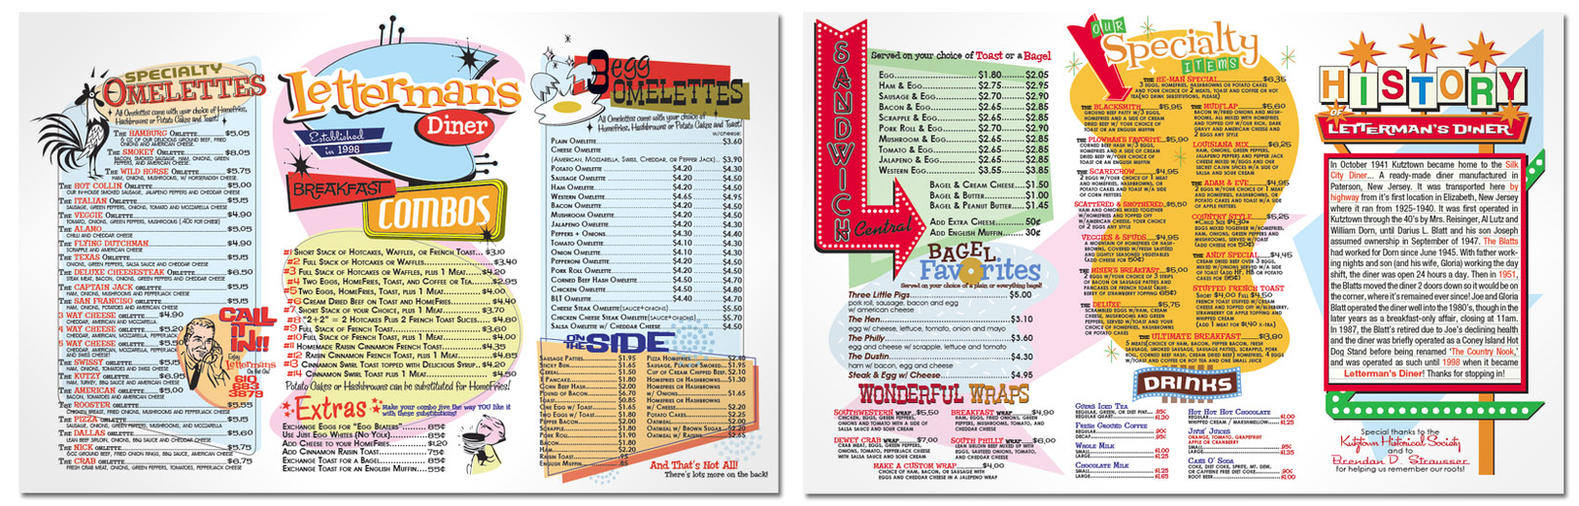 Lettermans Diner Menu By Aaronshupp